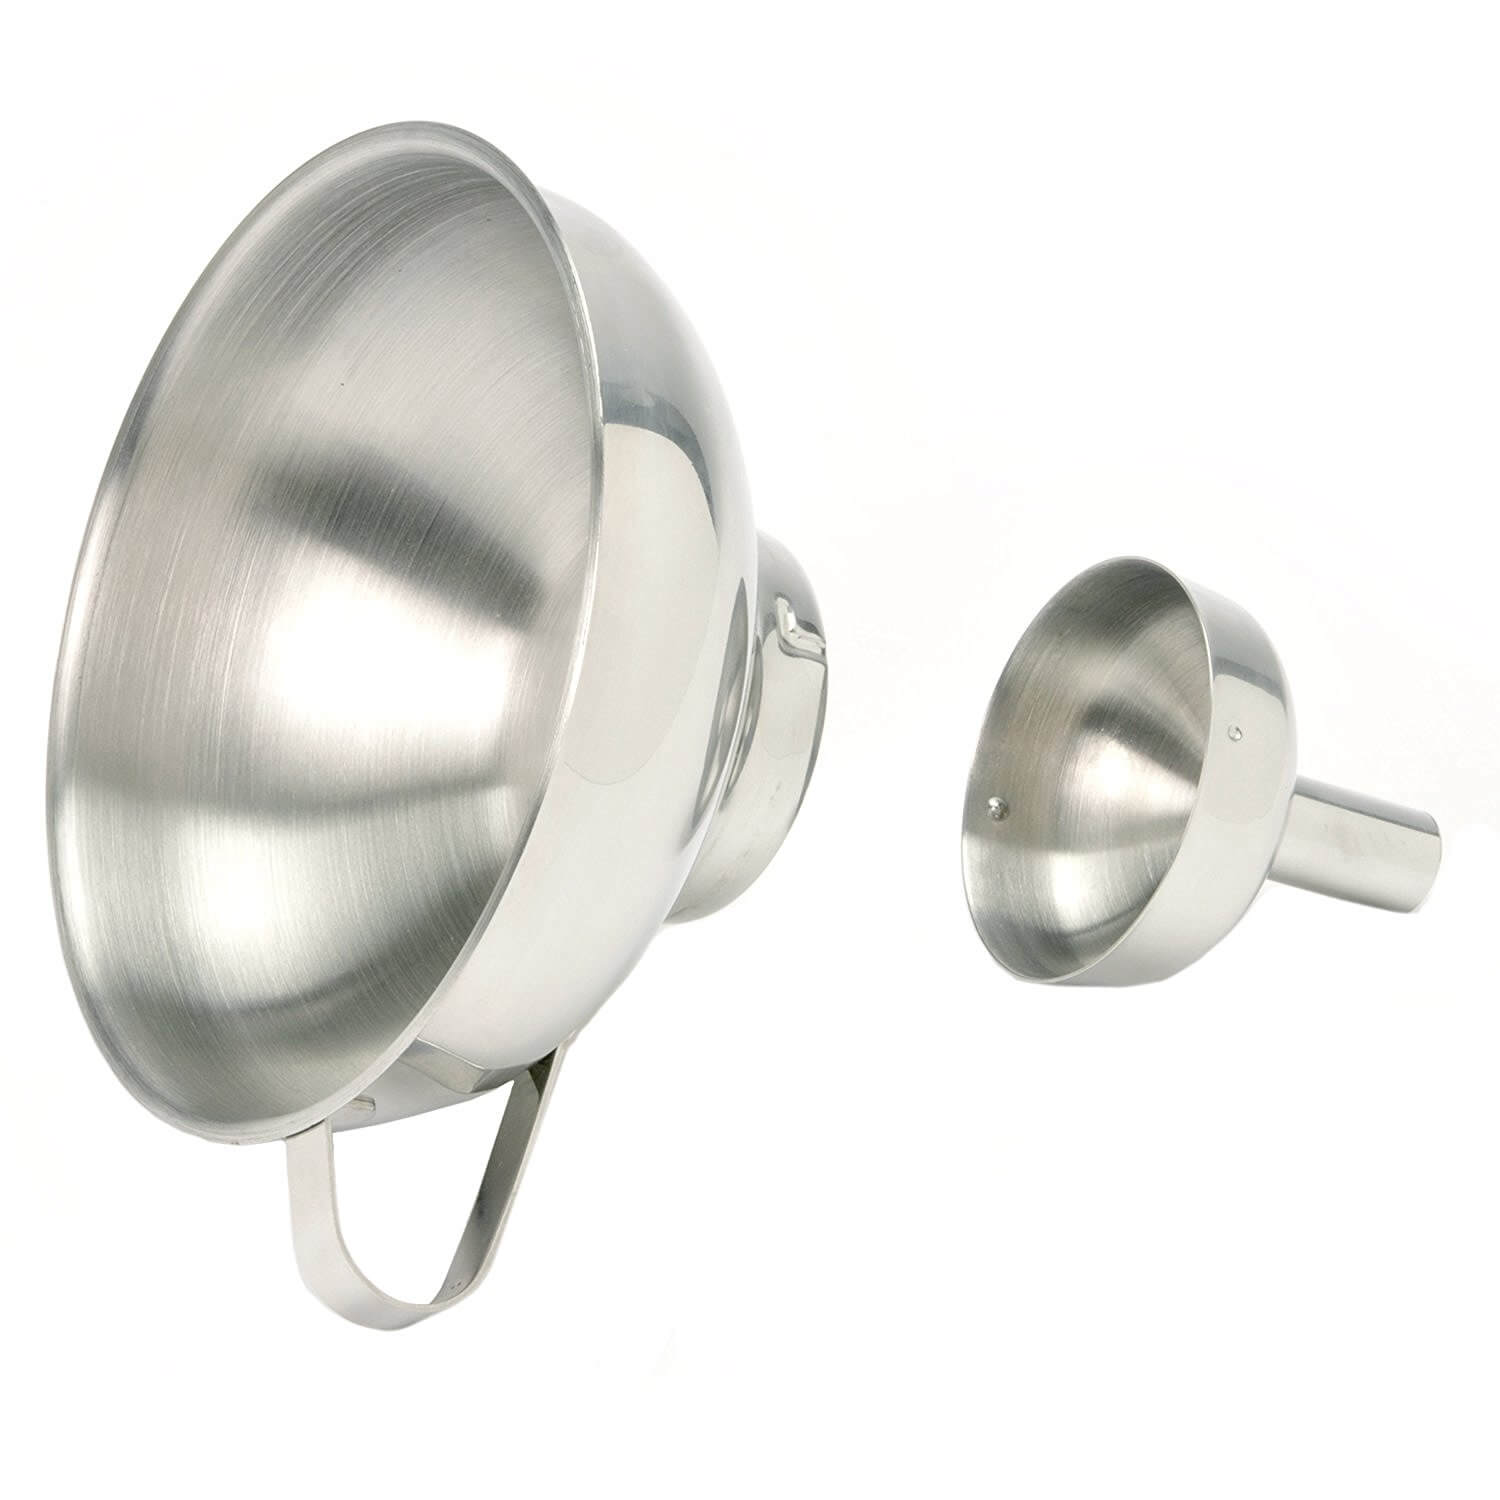 Stainless Steel Funnel with Removable Spout